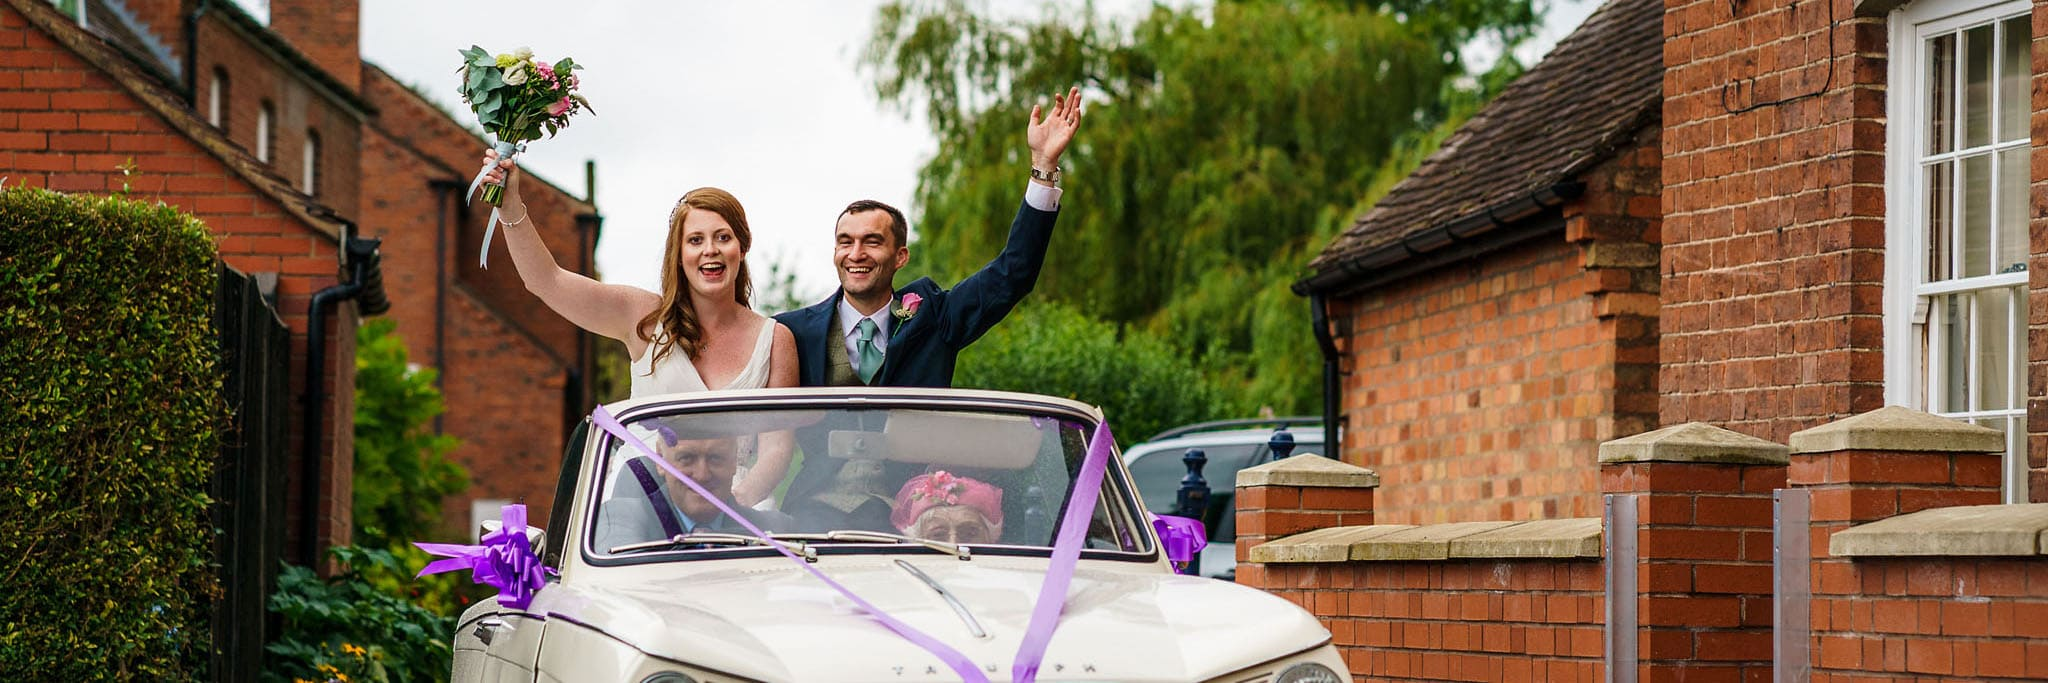 Triumph arrival for the bride and groom